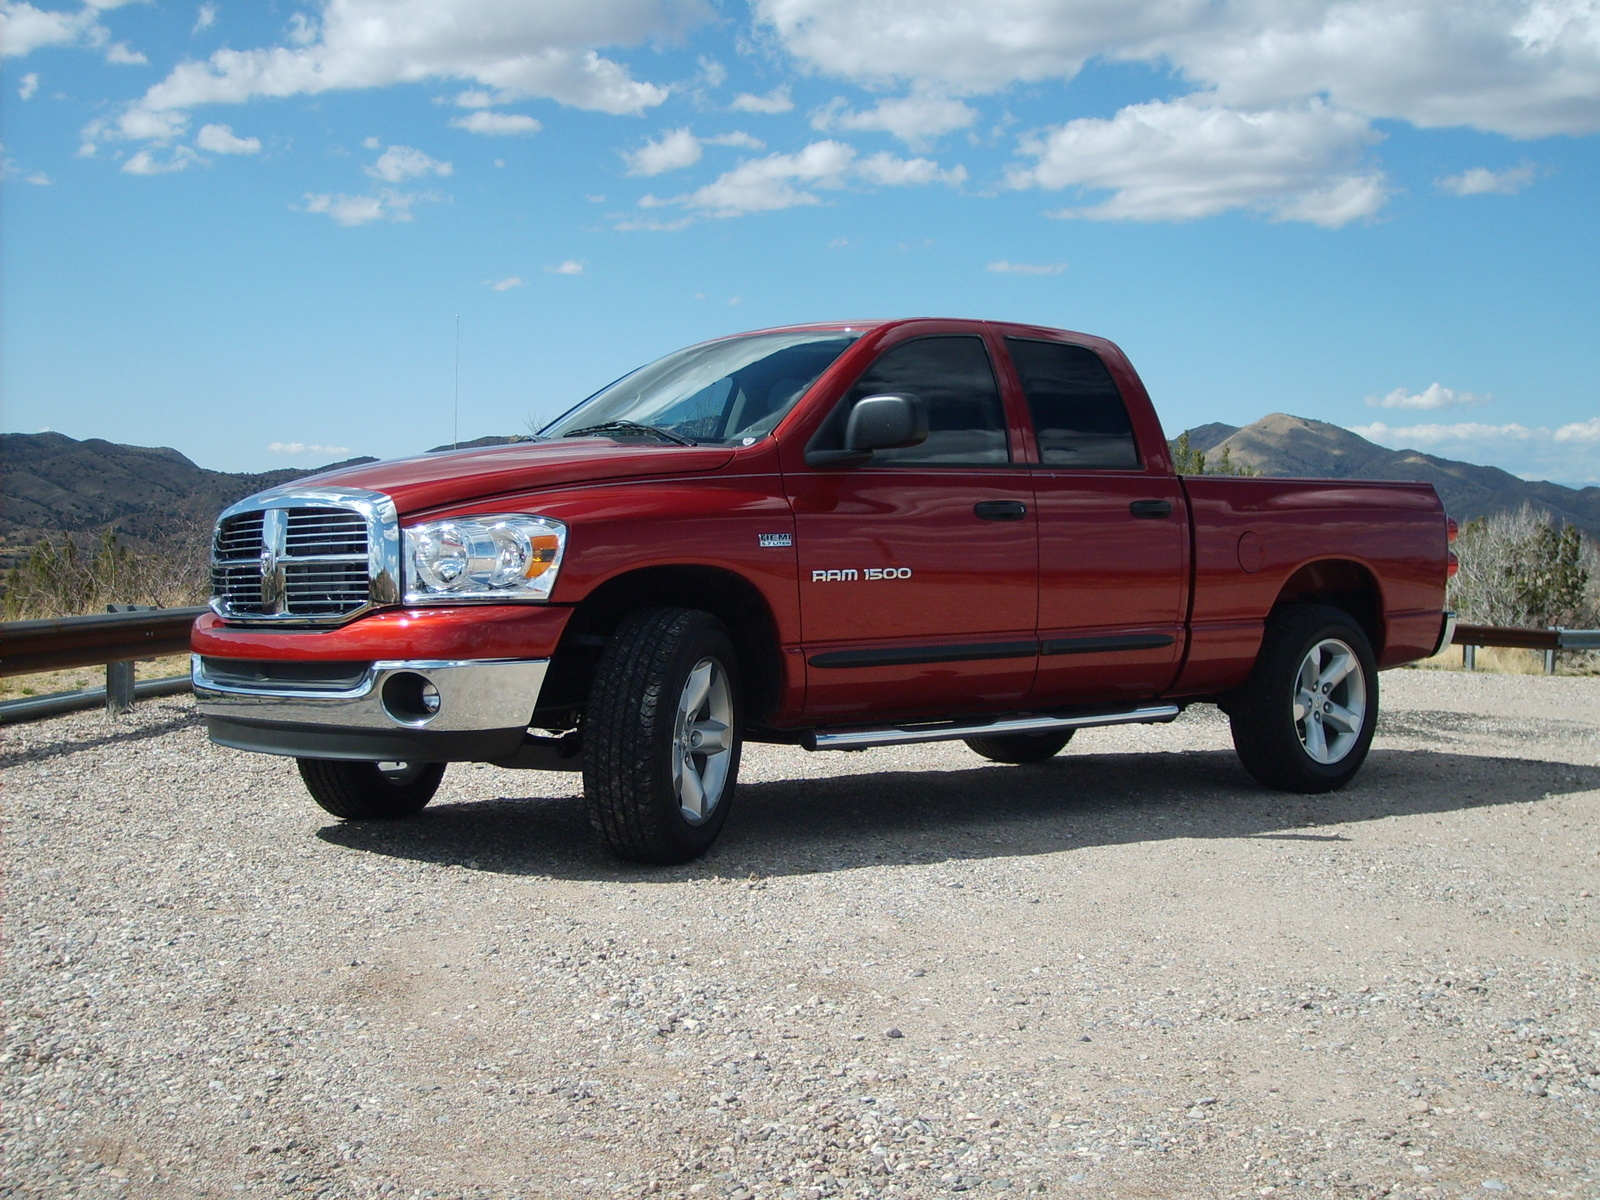 2007 dodge ram pickup 1500 exterior pictures cargurus. Black Bedroom Furniture Sets. Home Design Ideas